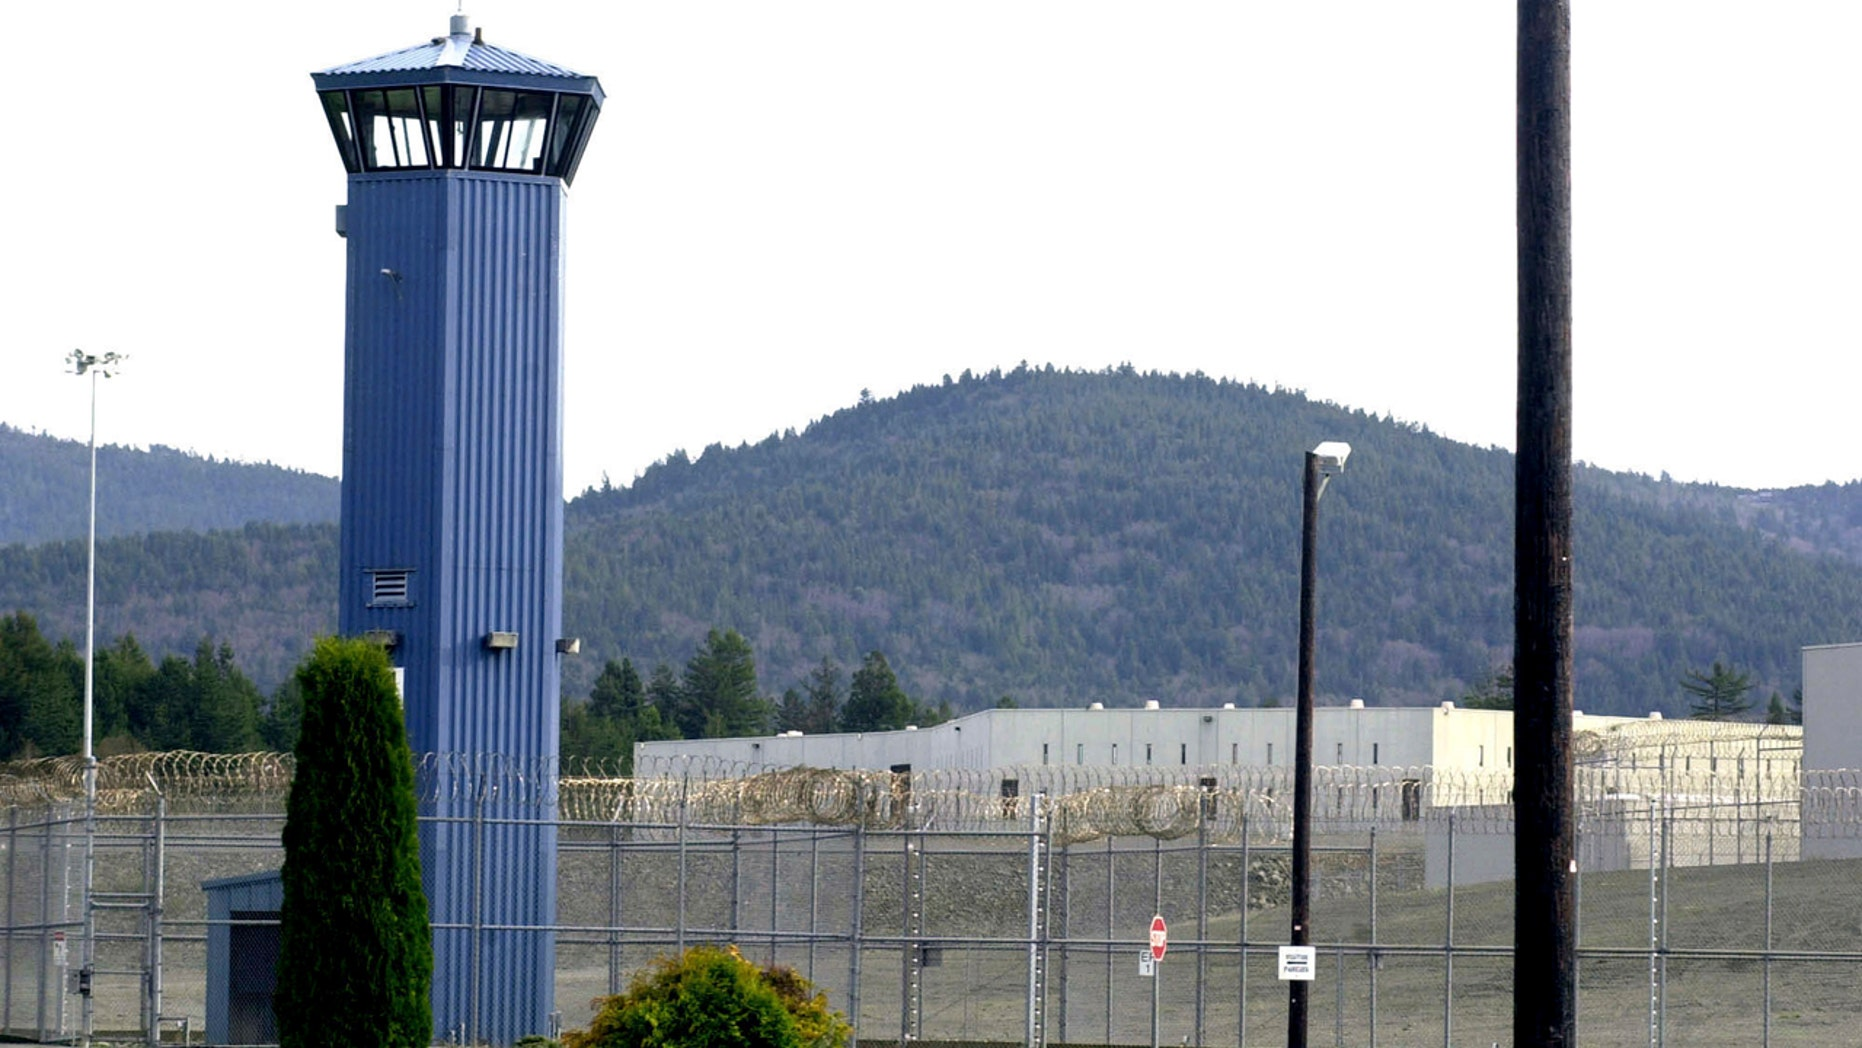 Pelican Bay State Prison riot: 5 inmates shot, 8 guards hospitalized